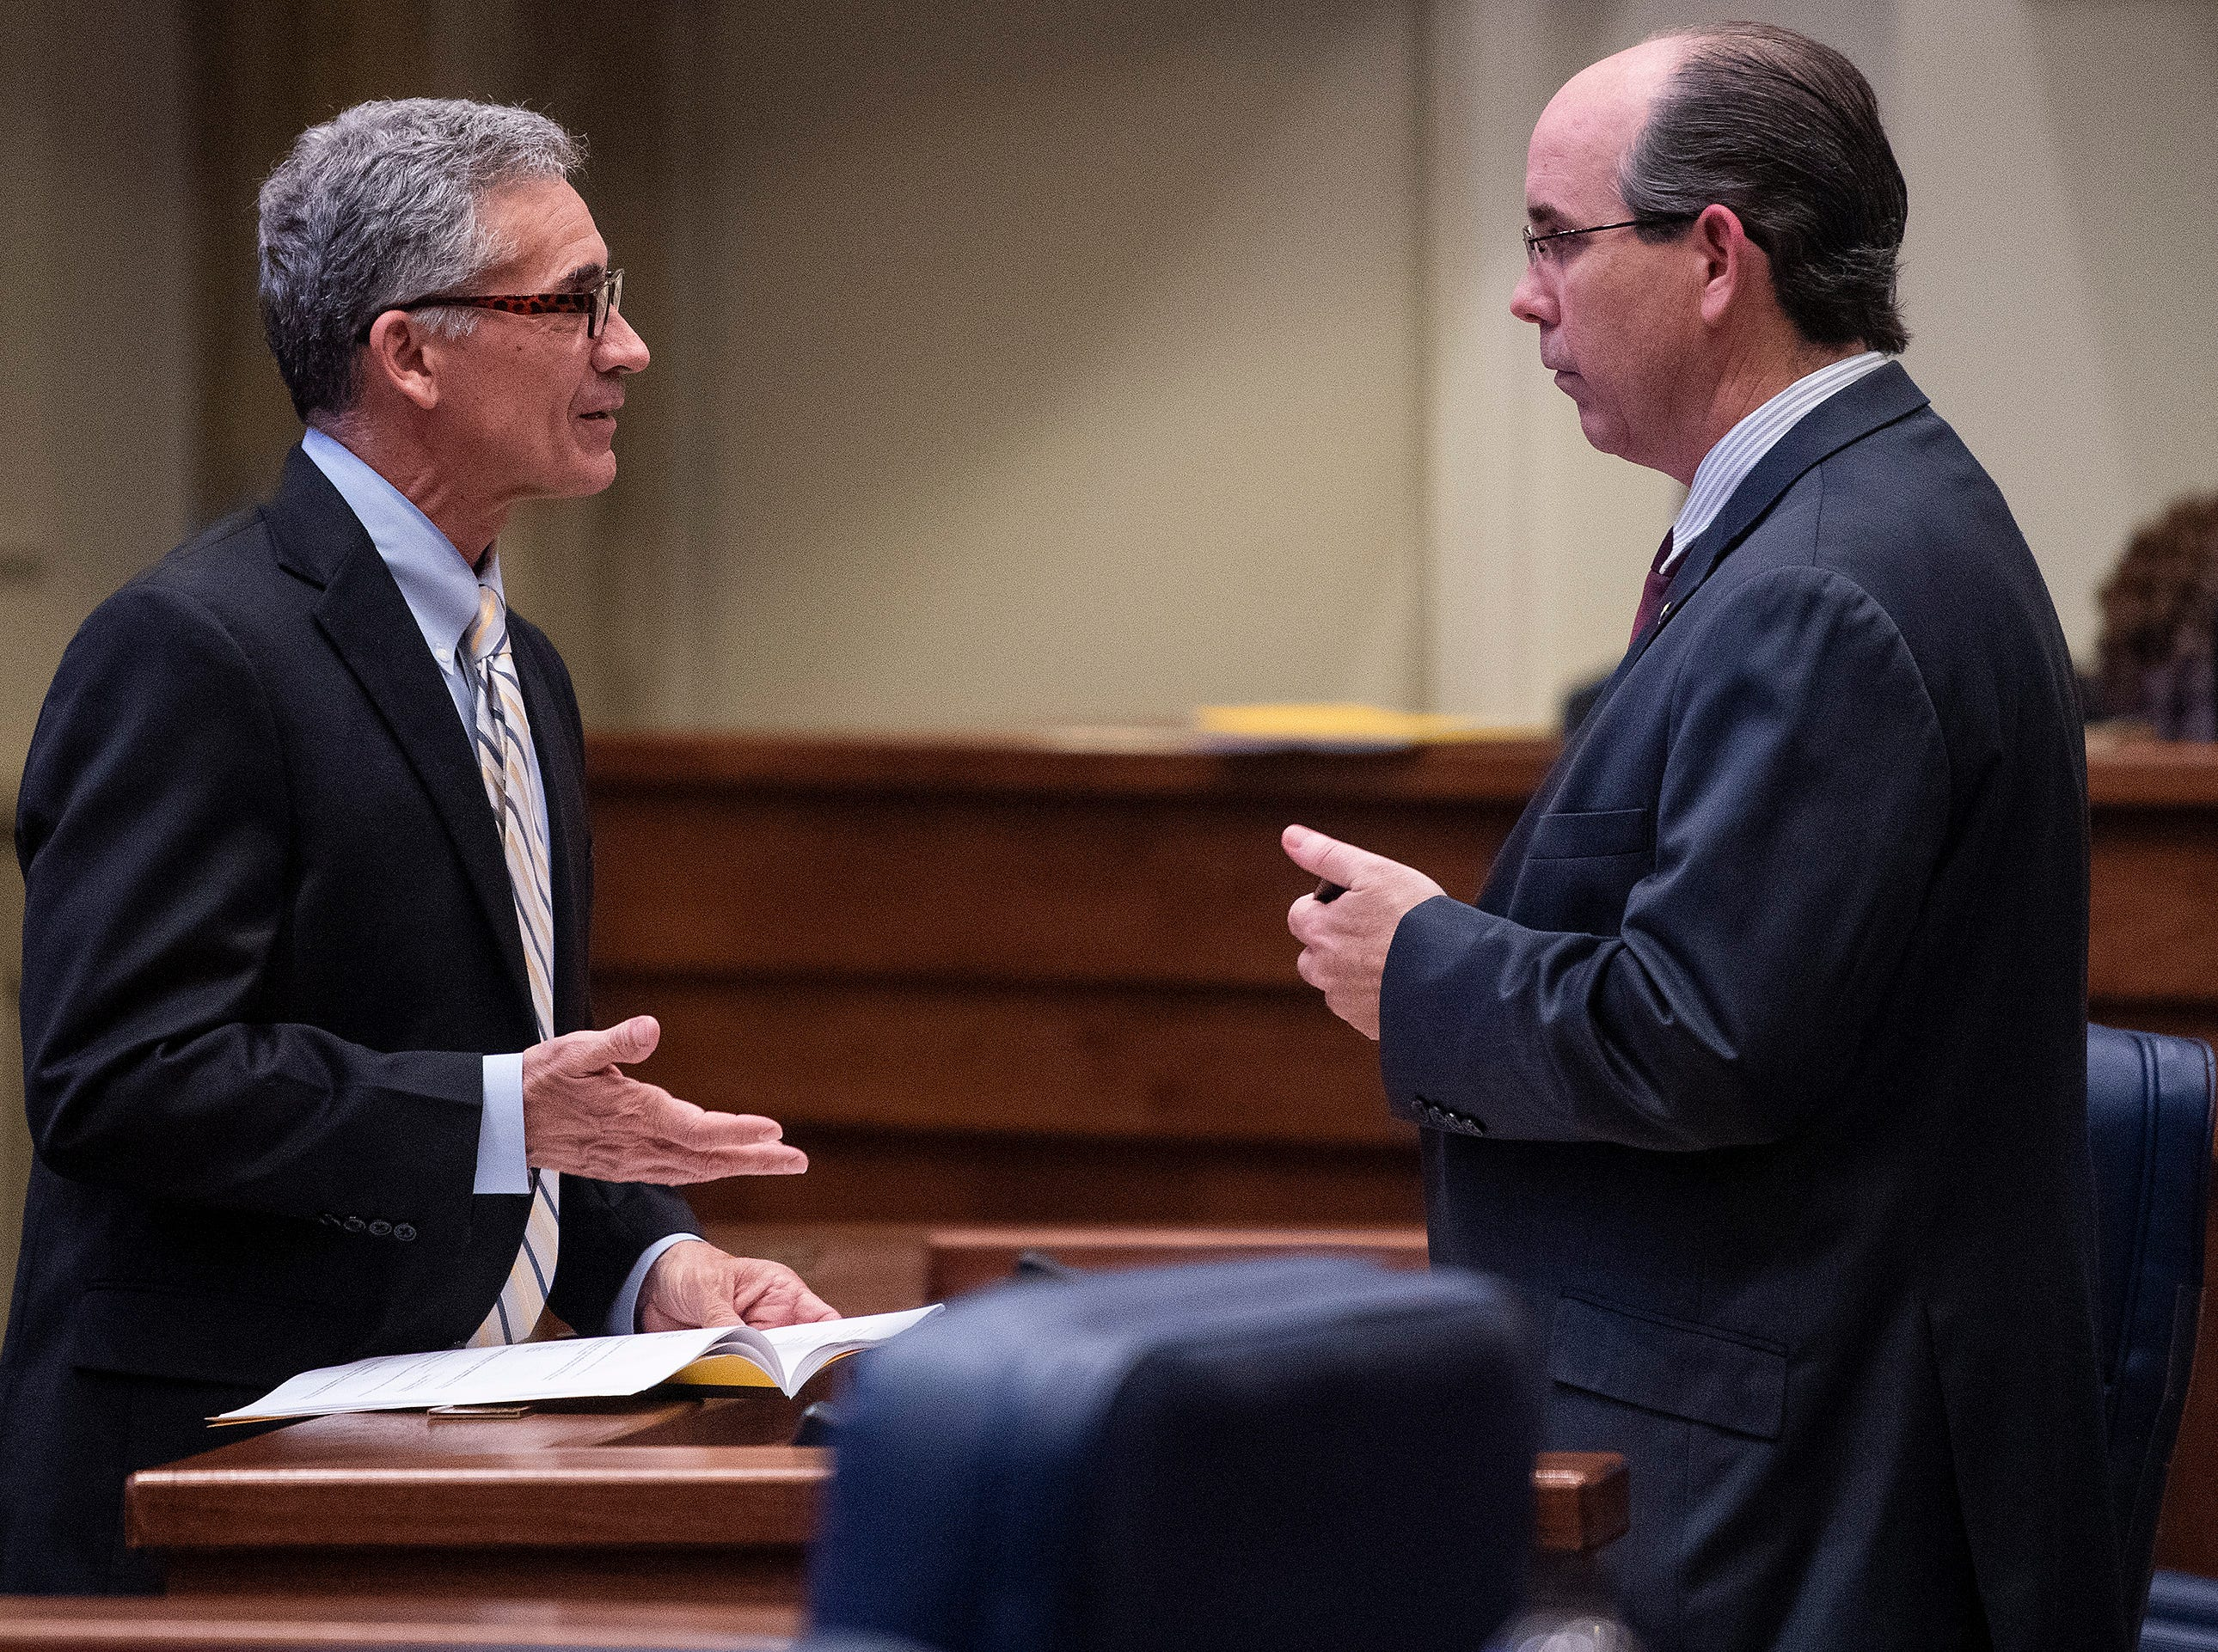 Sen. Del Marsh, left, and Sen. Clyde Chambliss chat as debate on HB314, the near-total ban on abortion bill, is held in the senate chamber in the Alabama Statehouse in Montgomery, Ala., on Tuesday May 14, 2019.